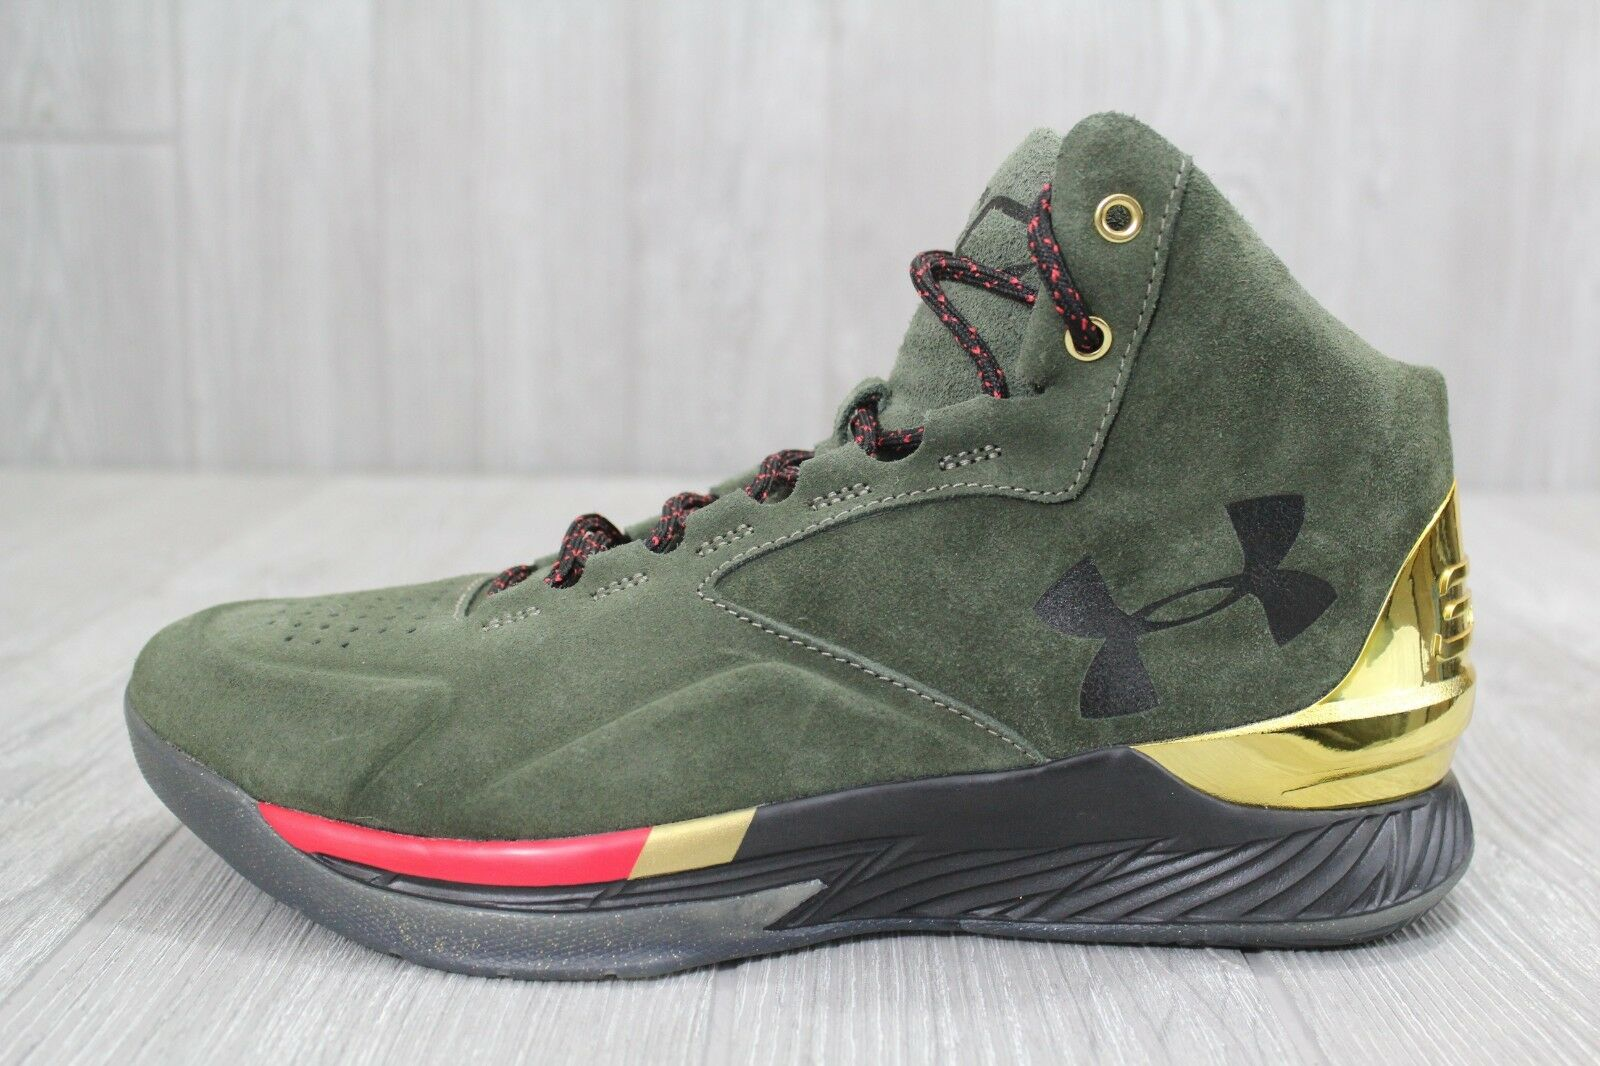 26 Under Armour Steph Curry SC 1 Lux Downtown Green/Gold 1296617 330 8.5 10 12